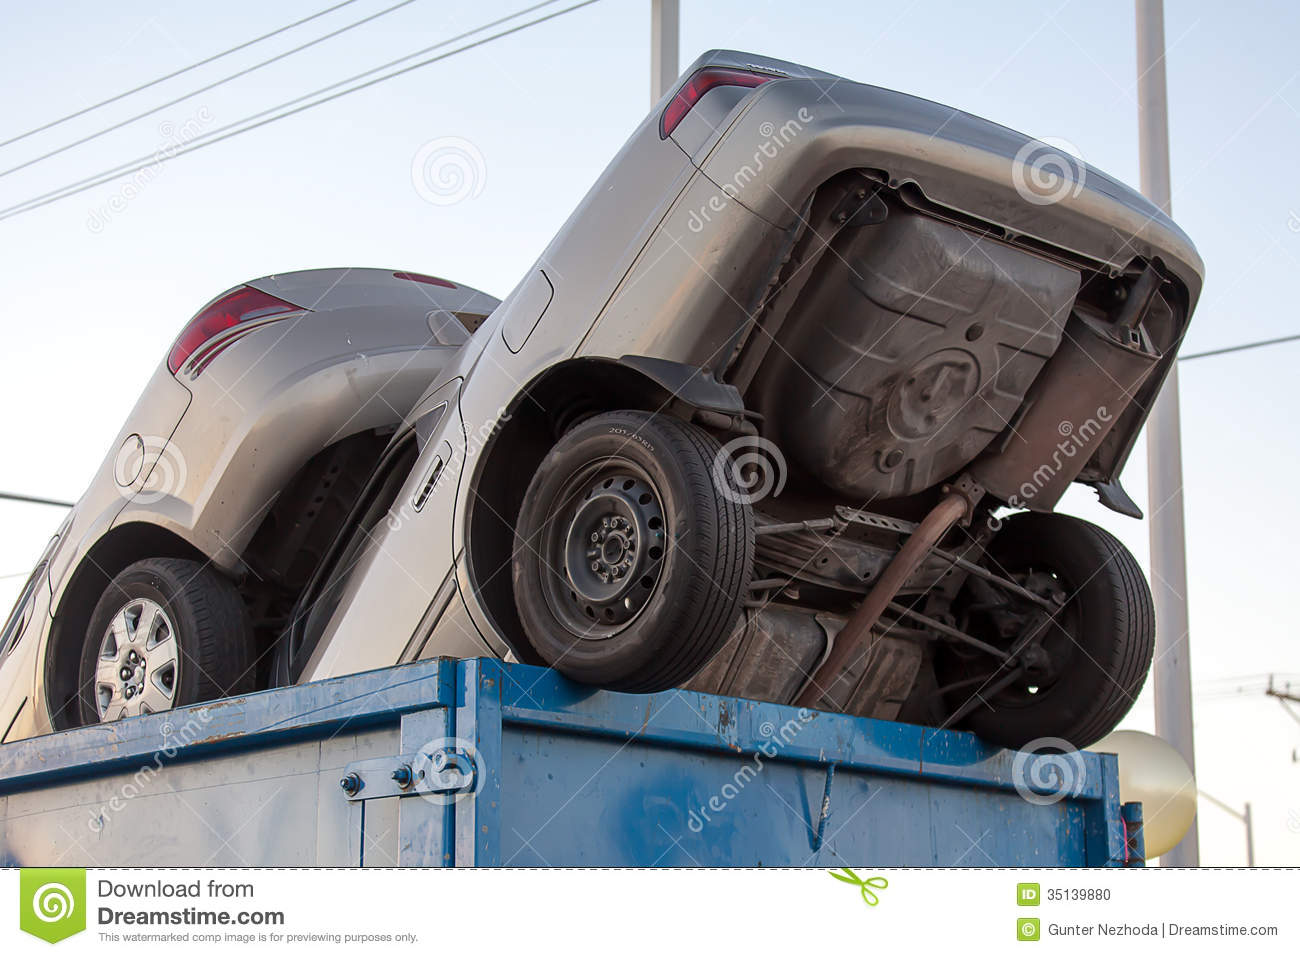 Junk Cars In Dumpster Cash For Clunkers Stock Photo - Image of ...